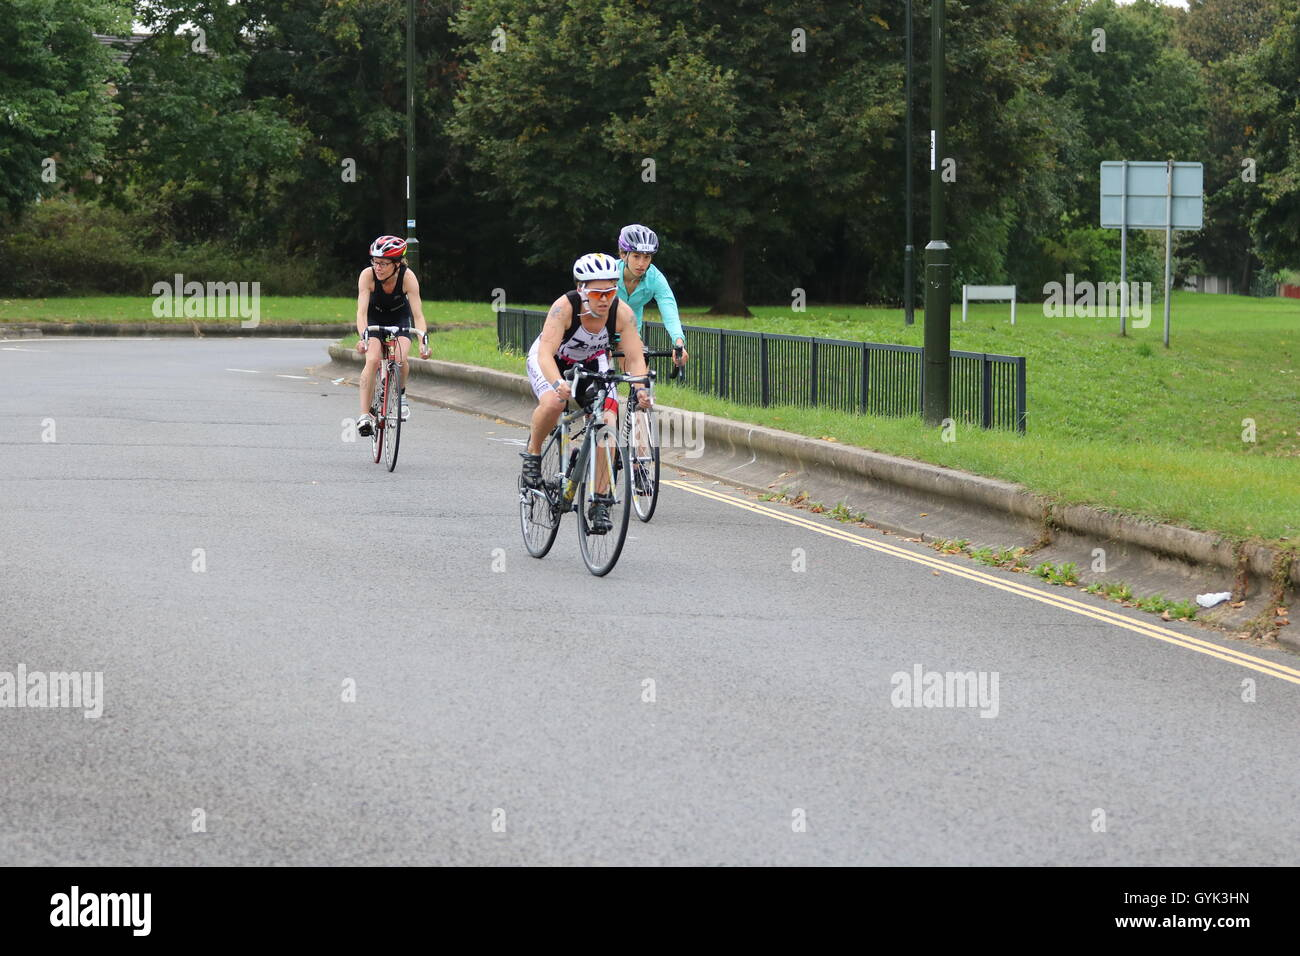 Three women triathletes during the cycling leg of the Crawley Triathlon. - Stock Image